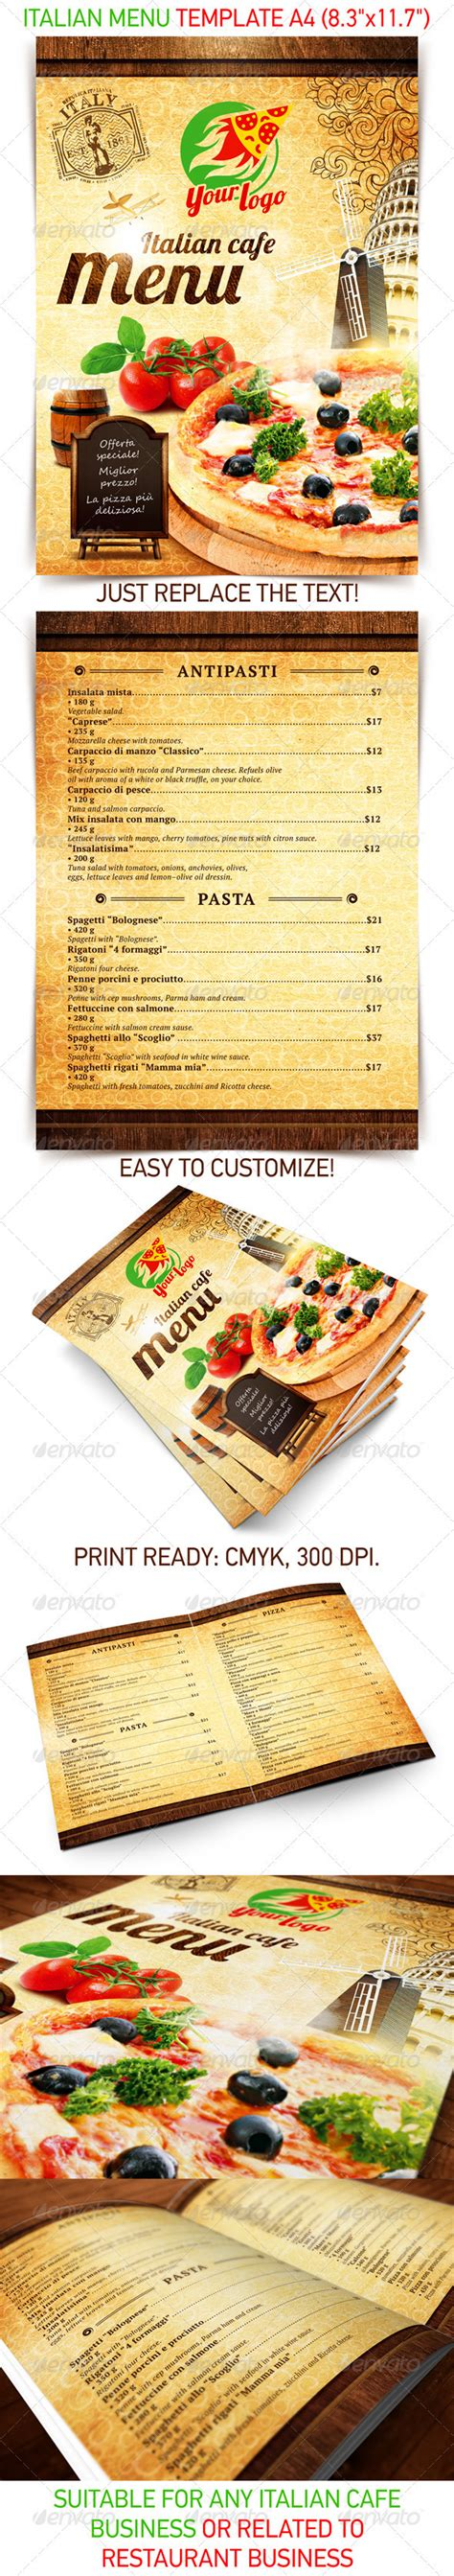 italian menu template psd template on behance